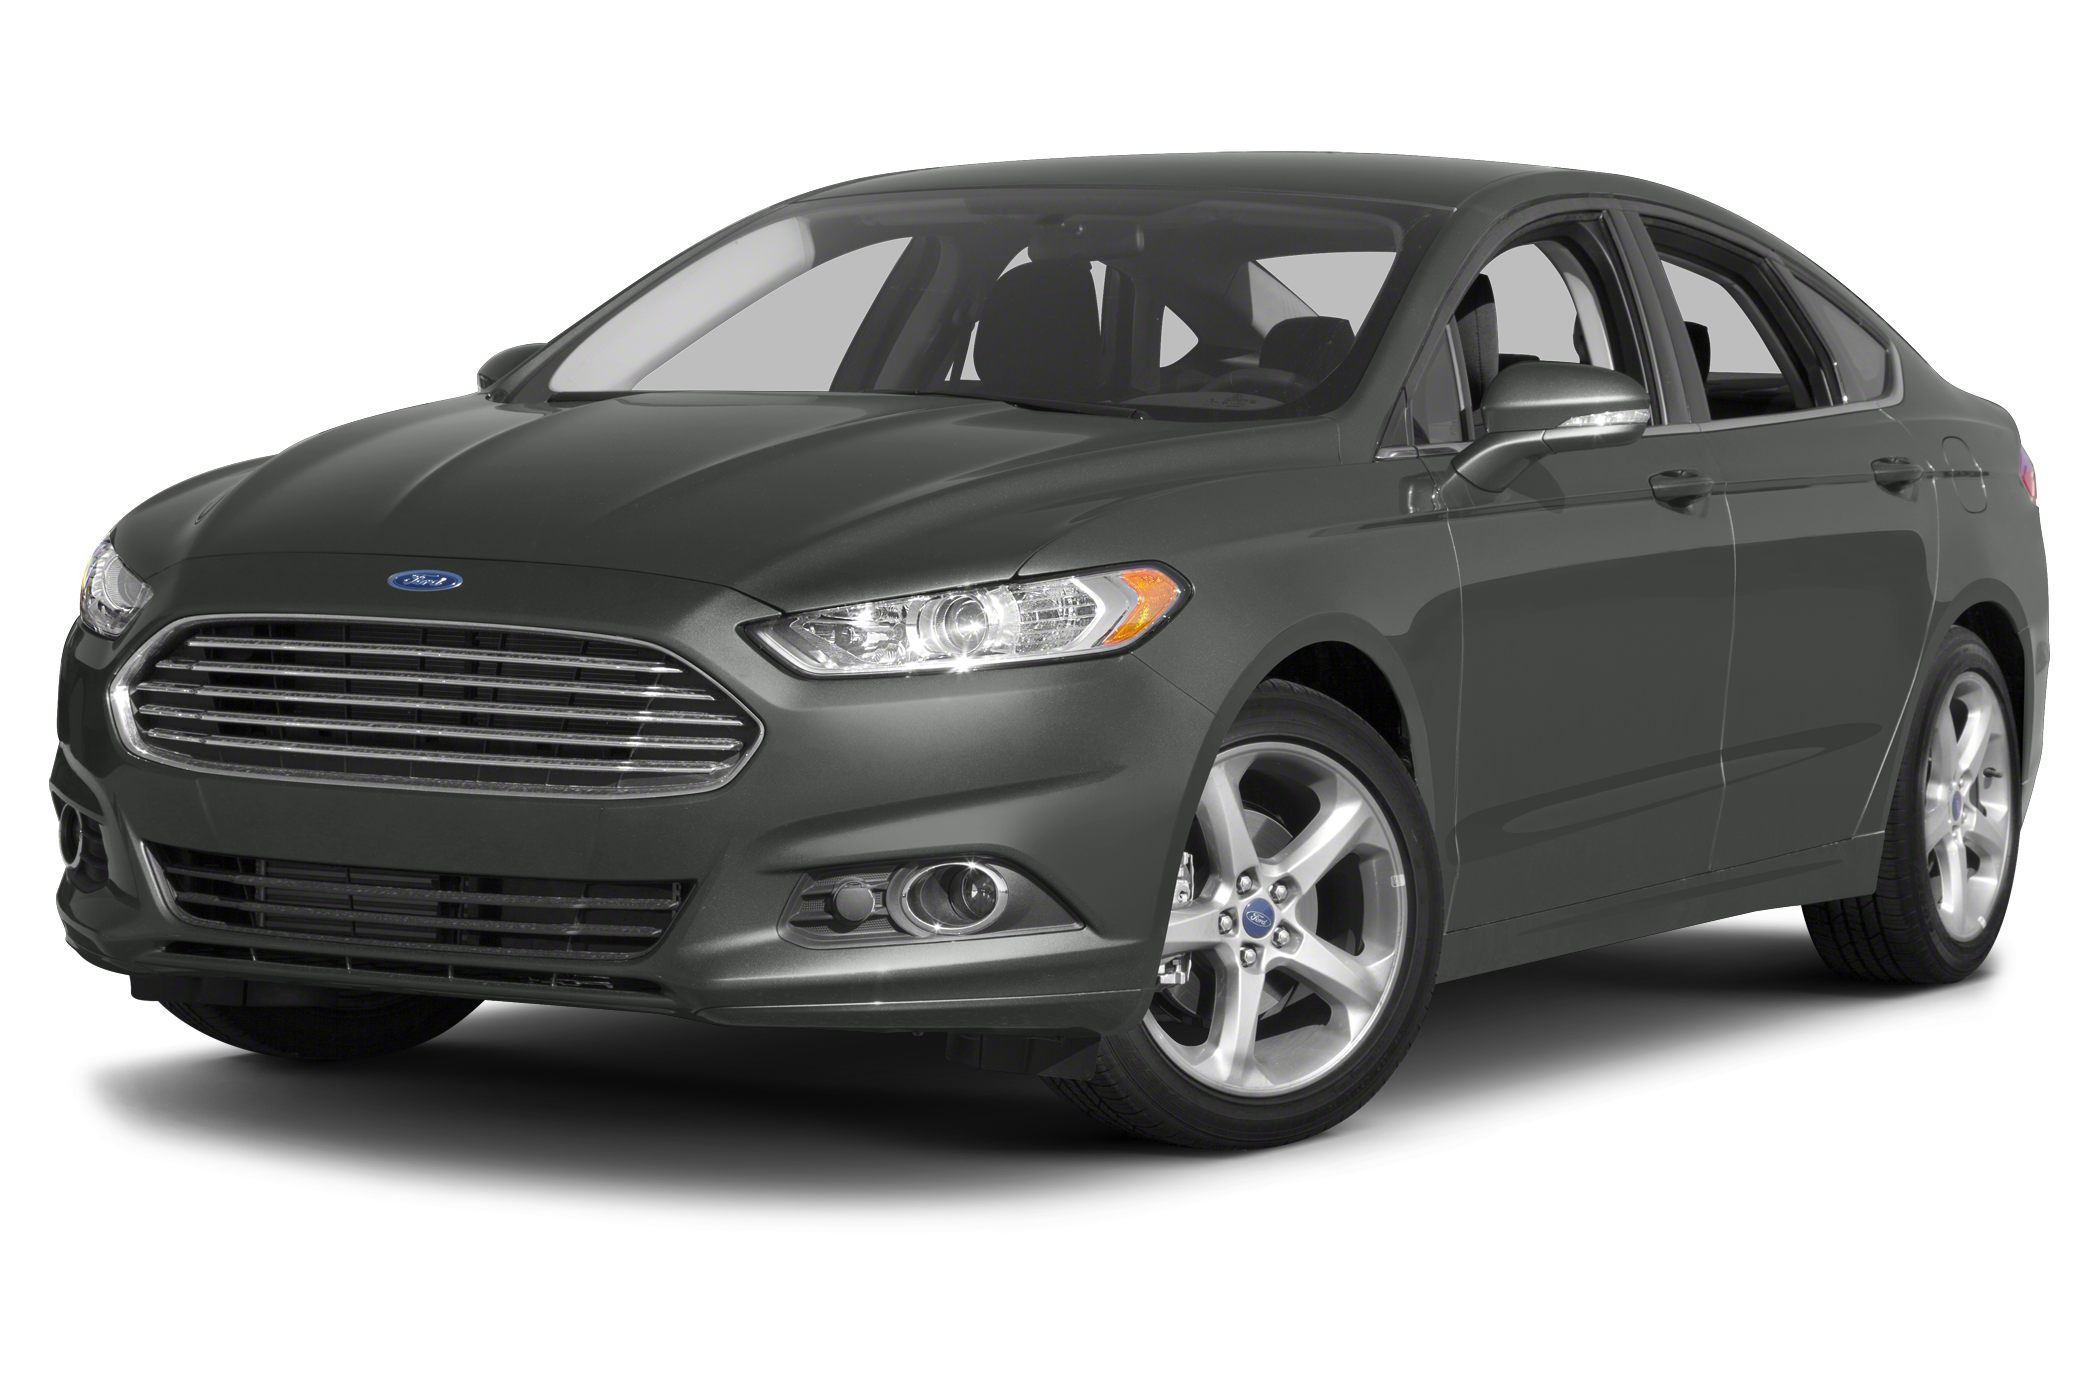 2014 Ford Fusion SE Sedan for sale in Webster for $18,919 with 37,590 miles